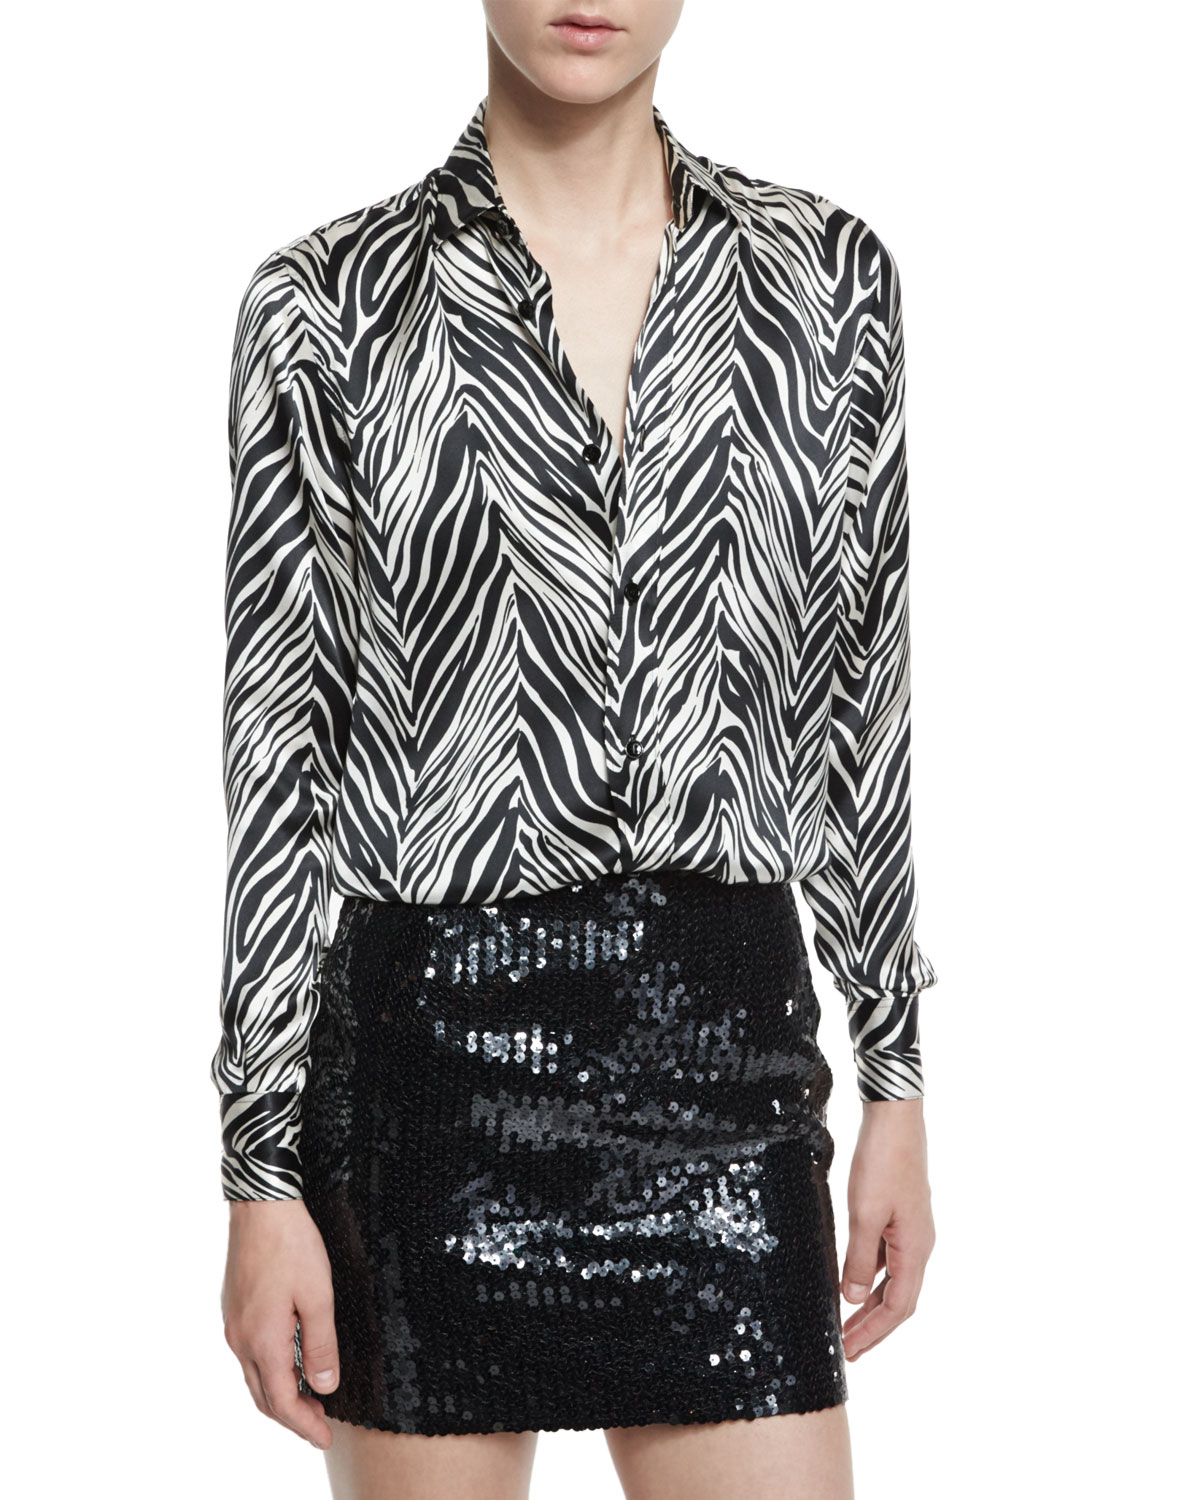 Zebra-Print Silk Blouse, Black/White